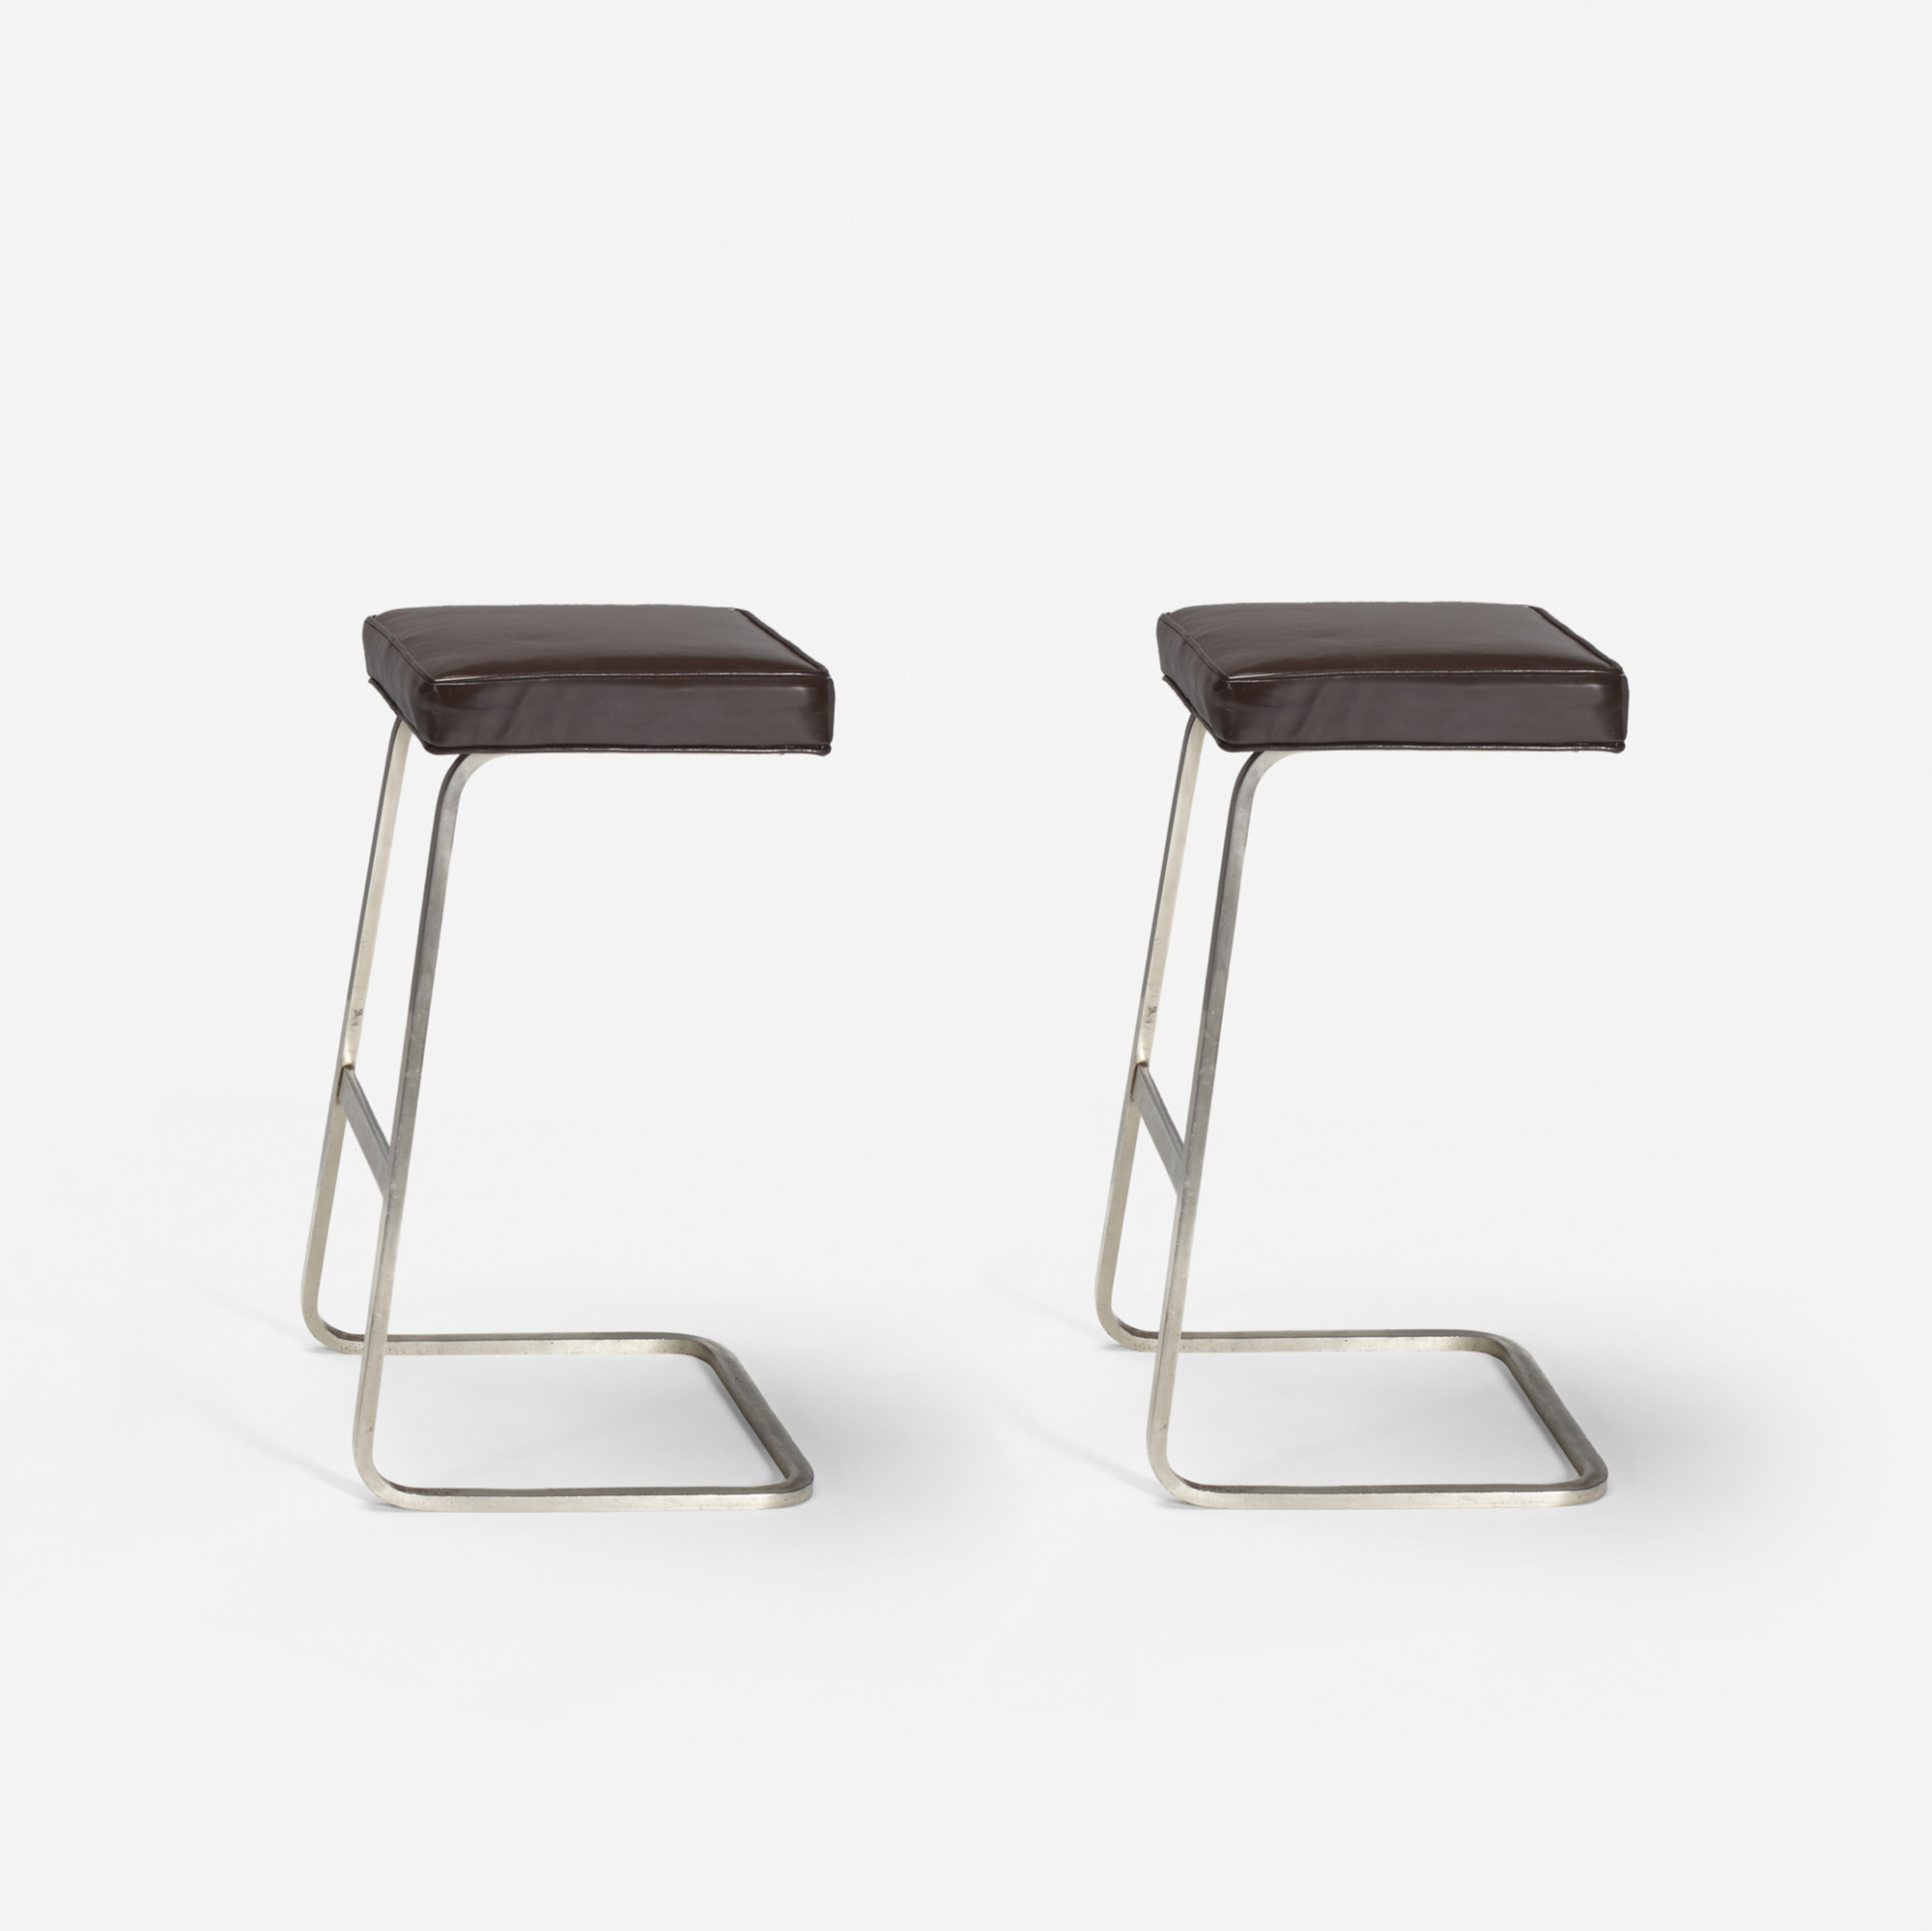 119: Ludwig Mies van der Rohe with Philip Johnson / Four Seasons bar stools from the Grill Room, pair (1 of 1)